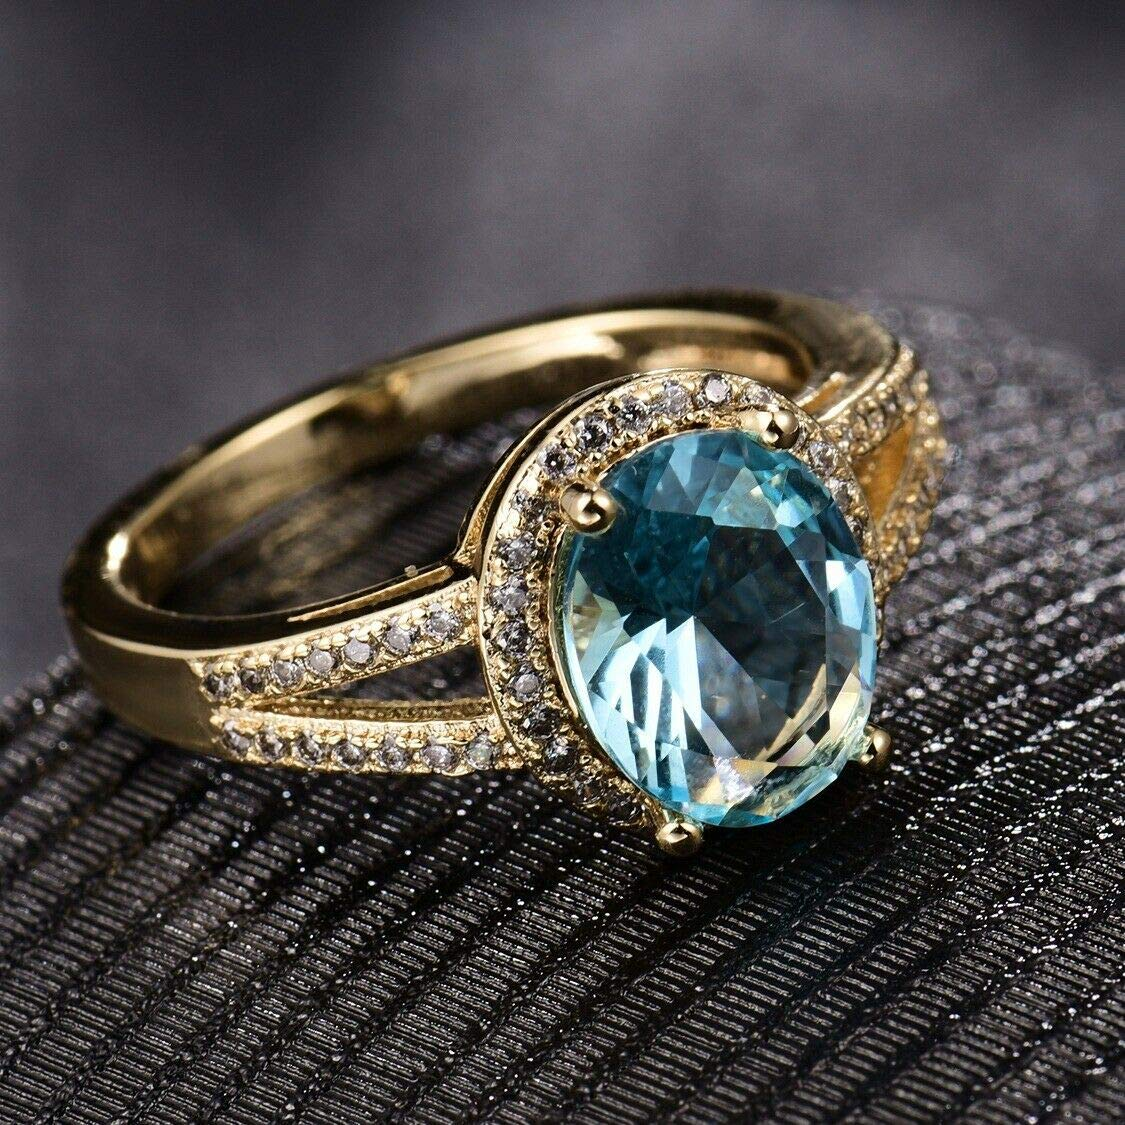 Silamanee Jewelry Exquisite Oval Blue Aquamarine Crystal Infinity 18K Gold Platinum Filled Ring 8